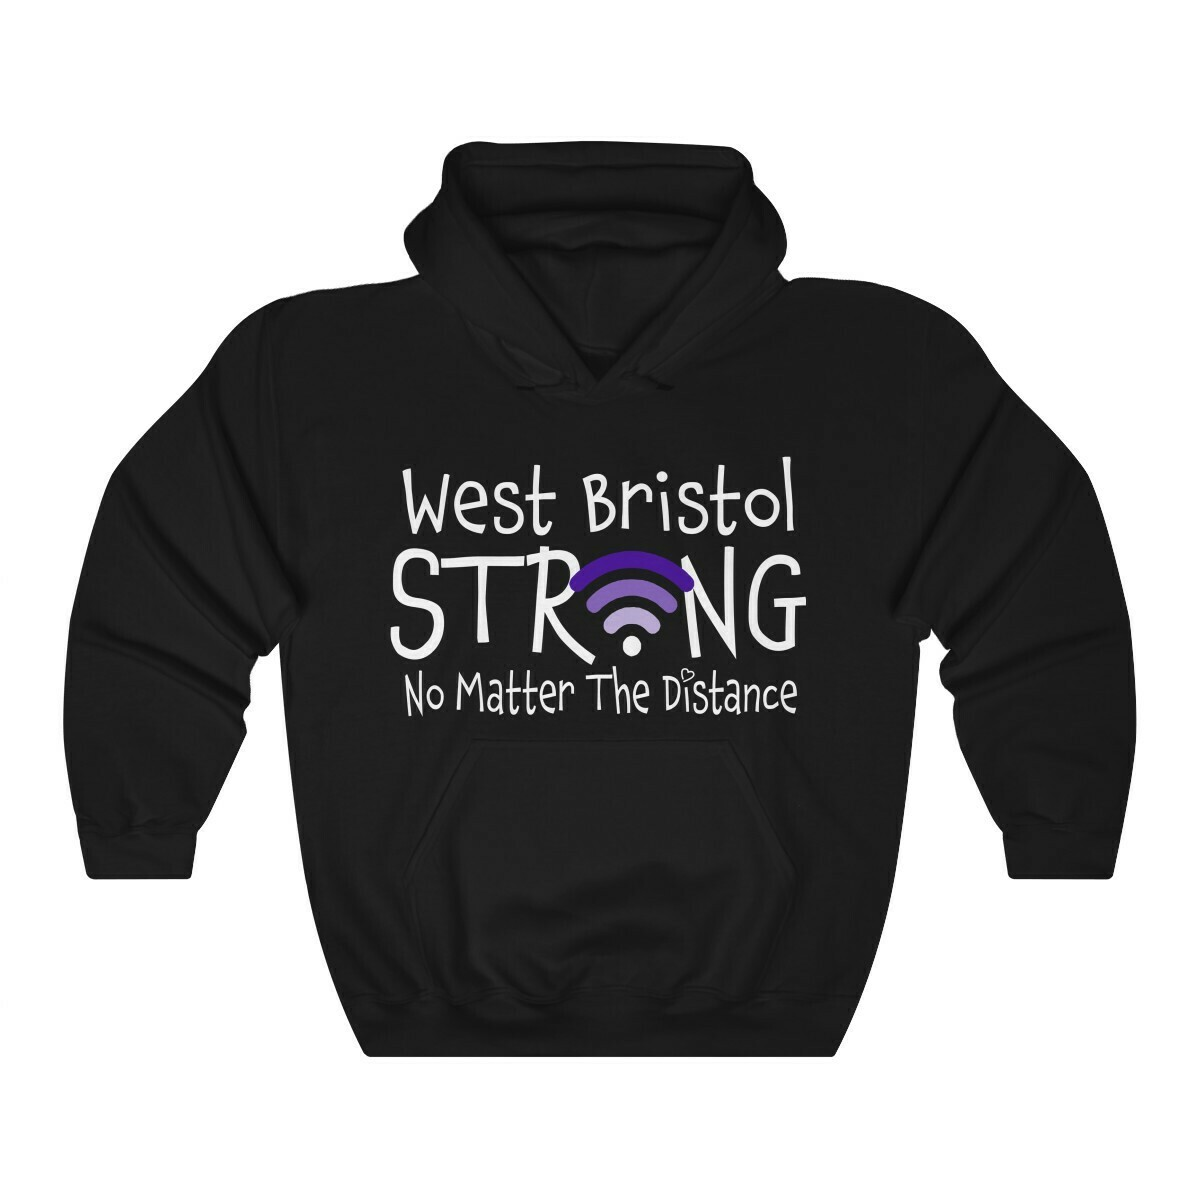 *West Bristol Strong - 18500